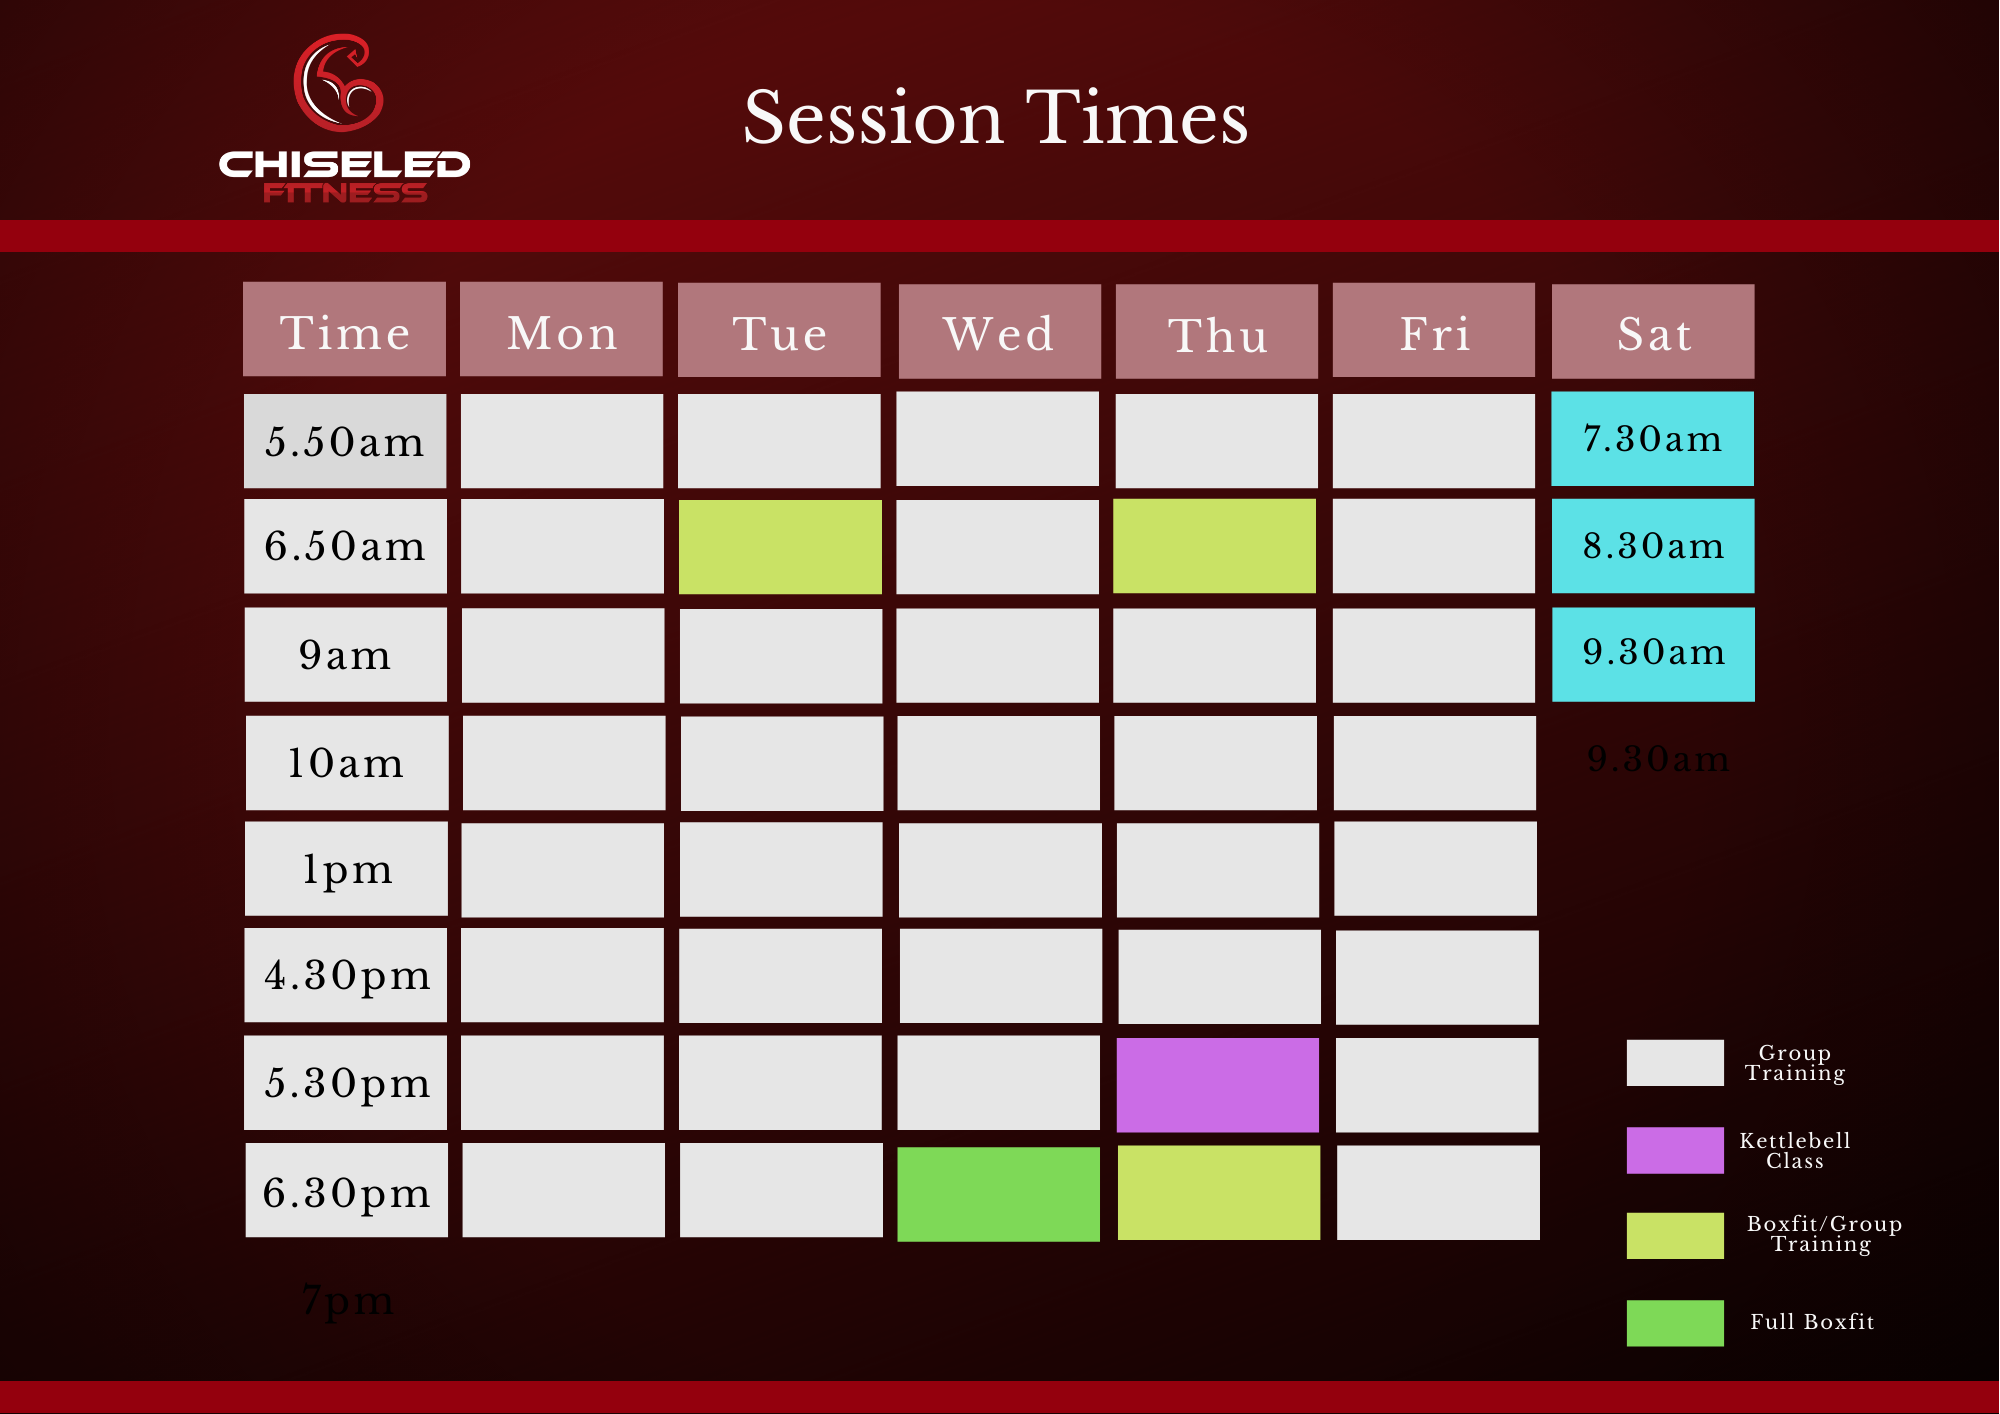 Session Times Update